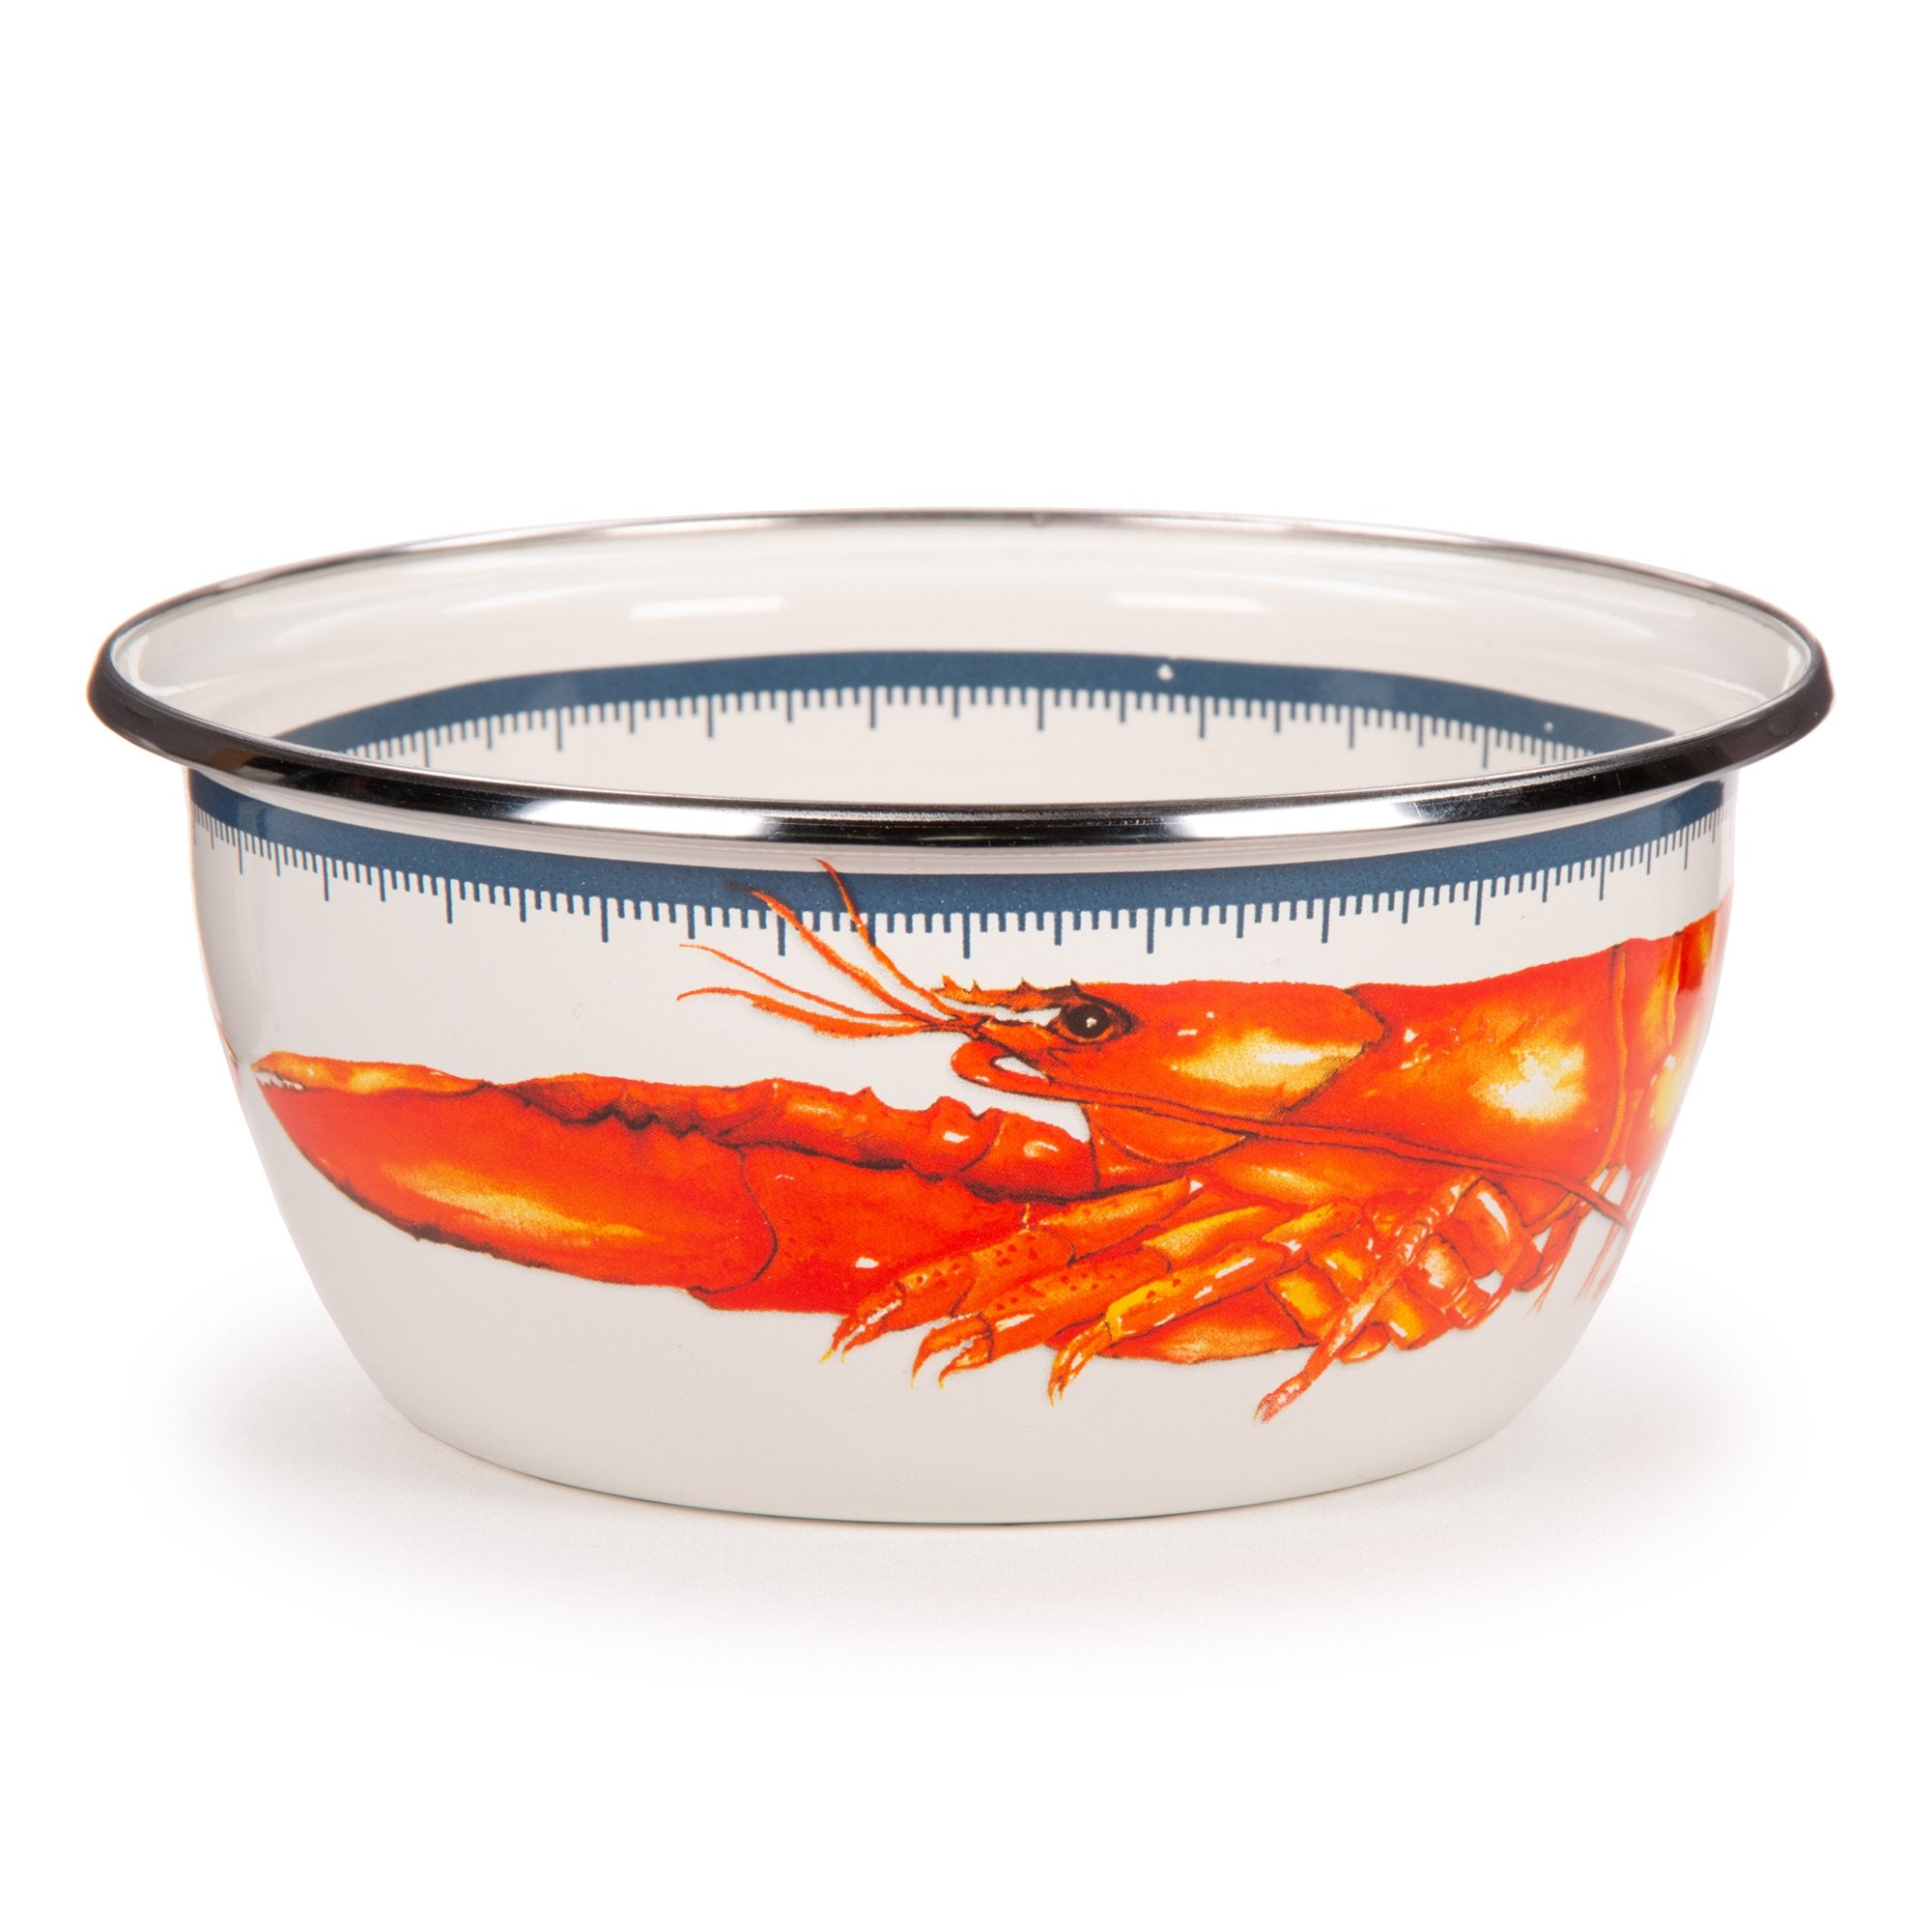 LS59S6 - Set of 6 Lobster Tasting Dishes Image 2